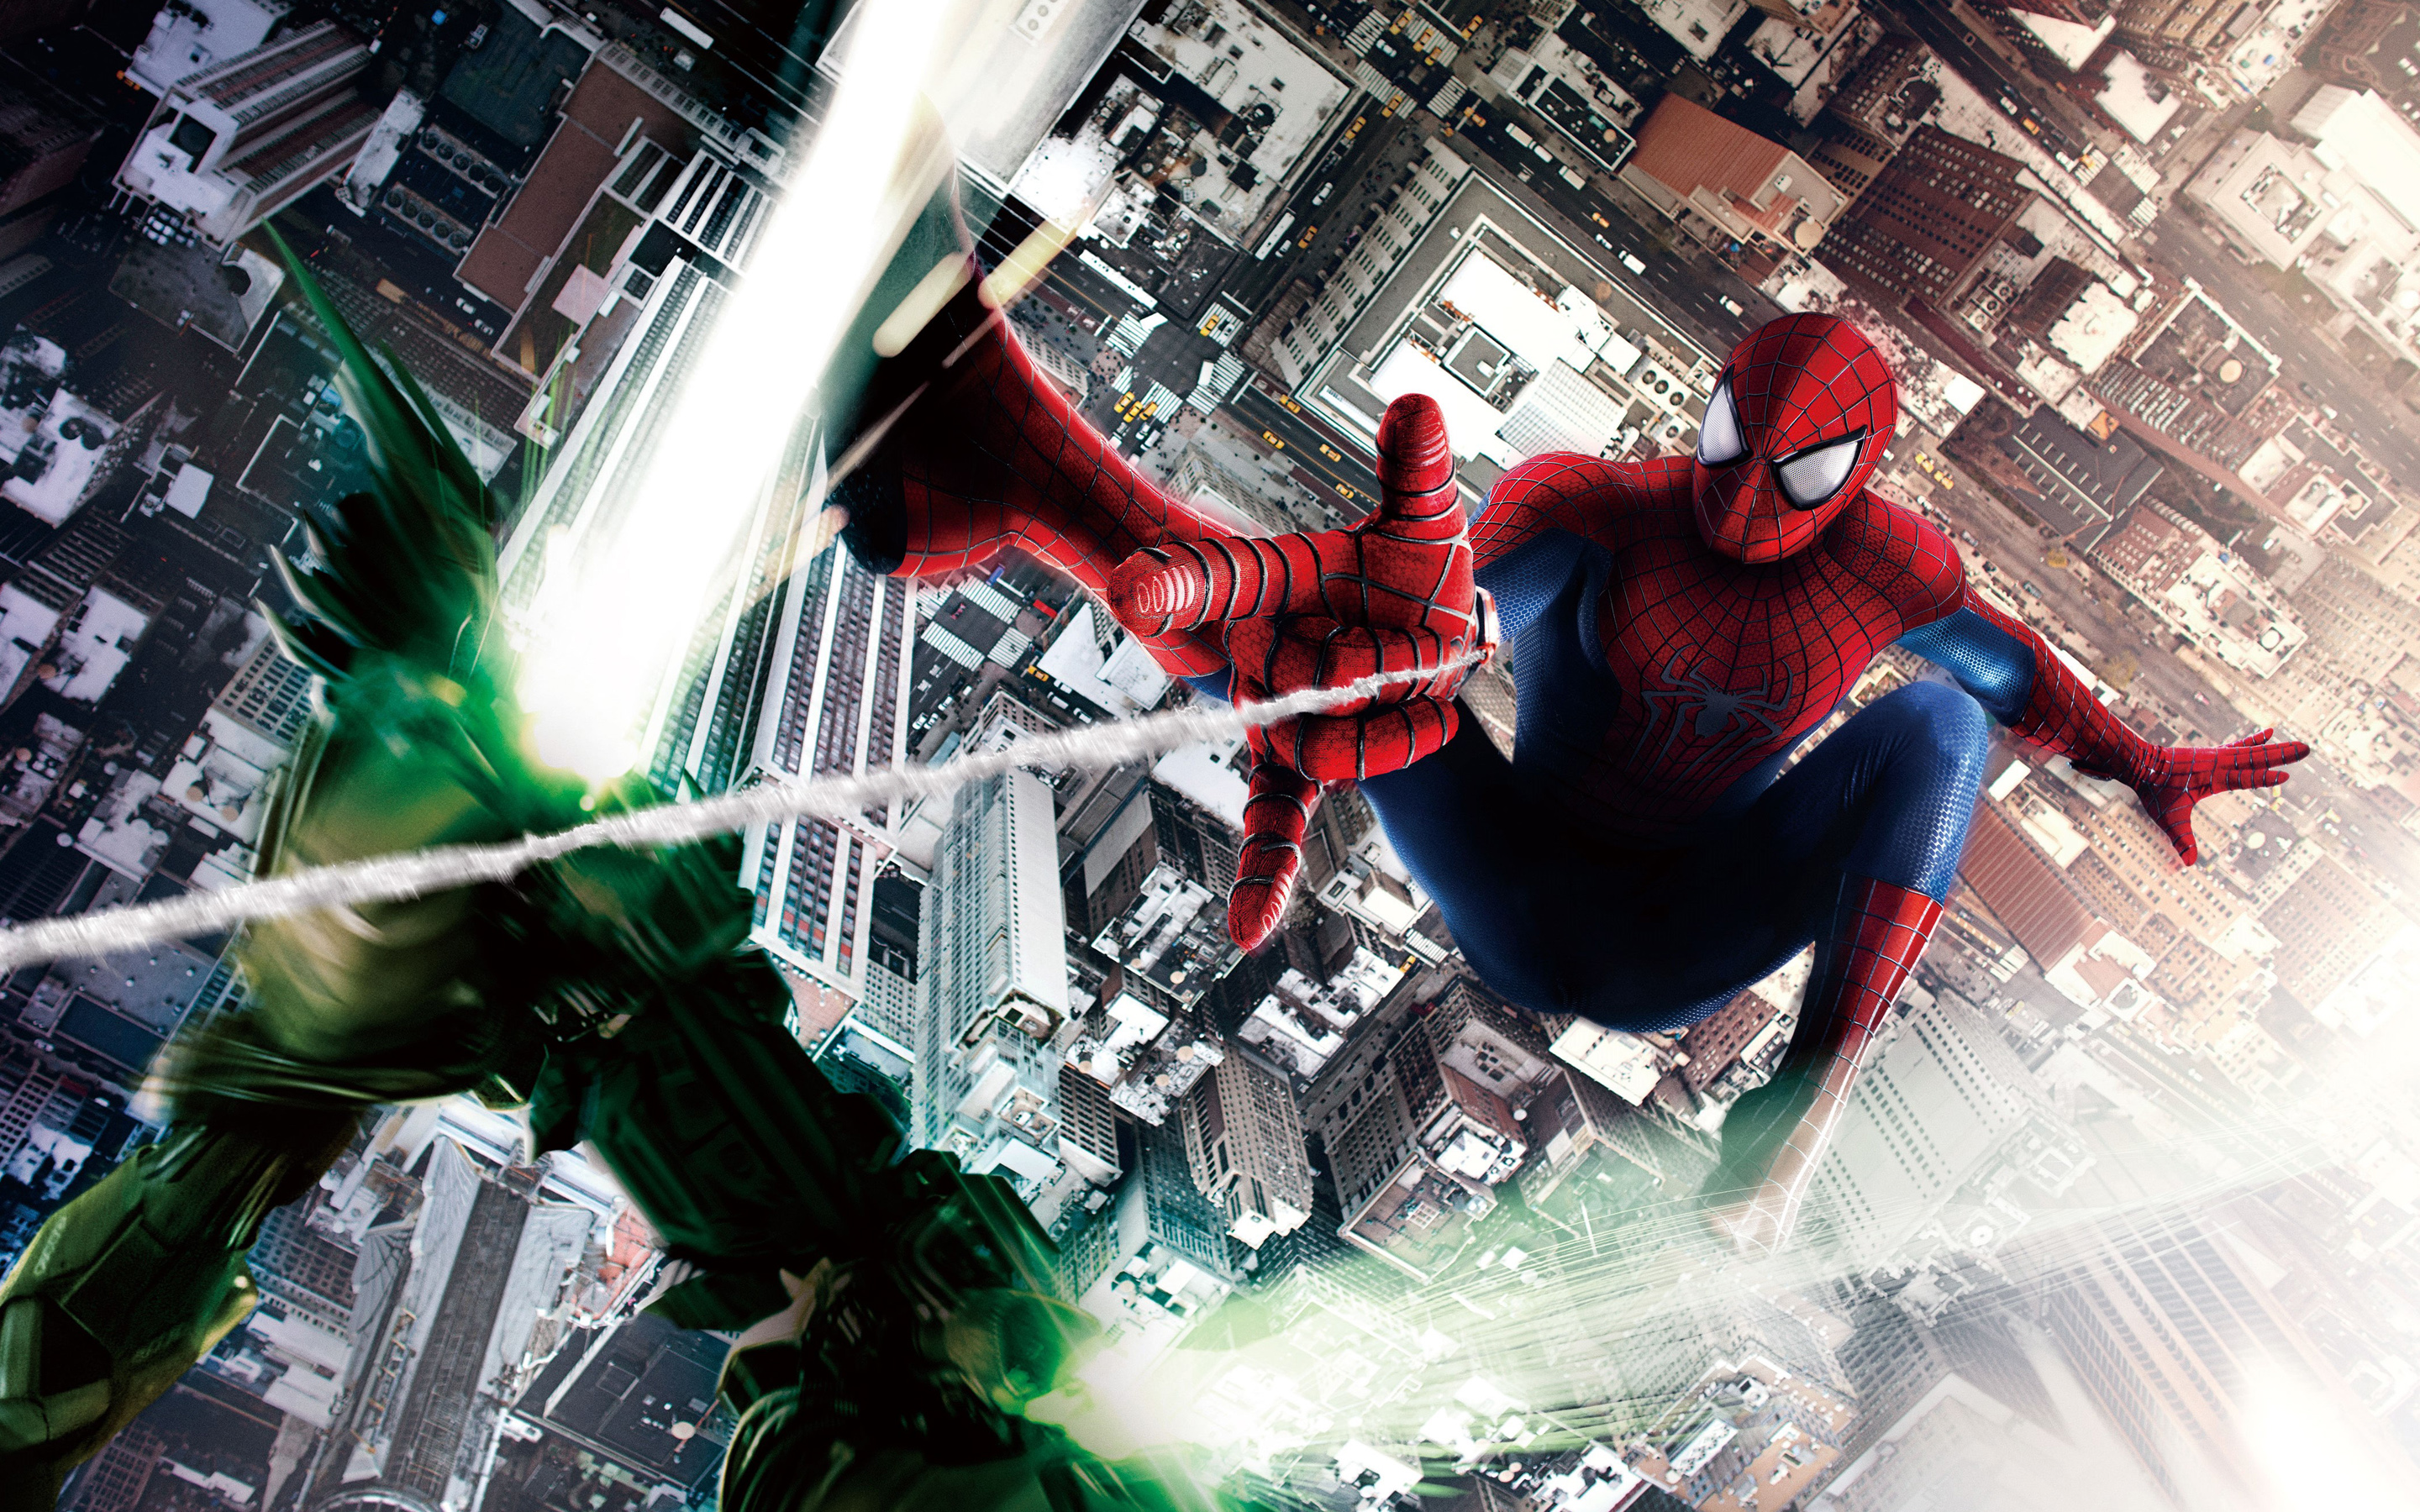 The Amazing Spider Man 2 Hd Wallpaper Background Image 2880x1800